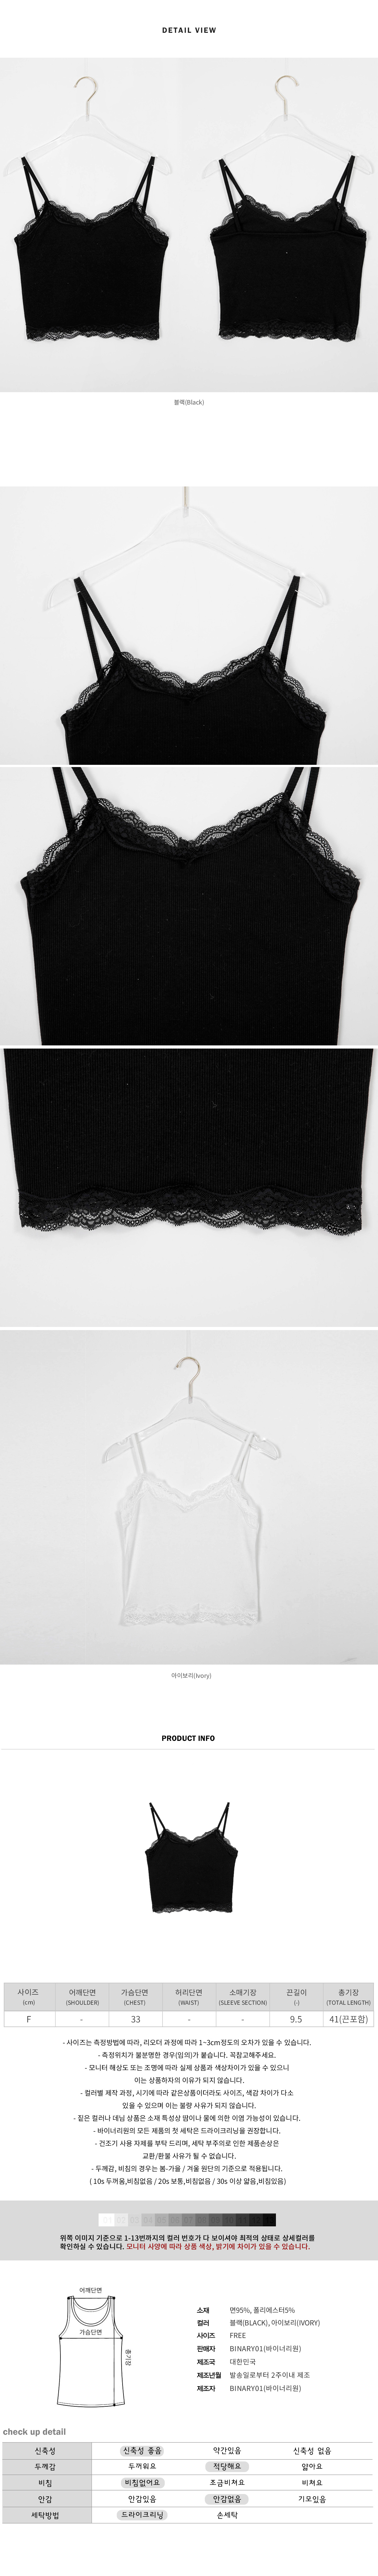 Lace Belly Bustier Sleeveless